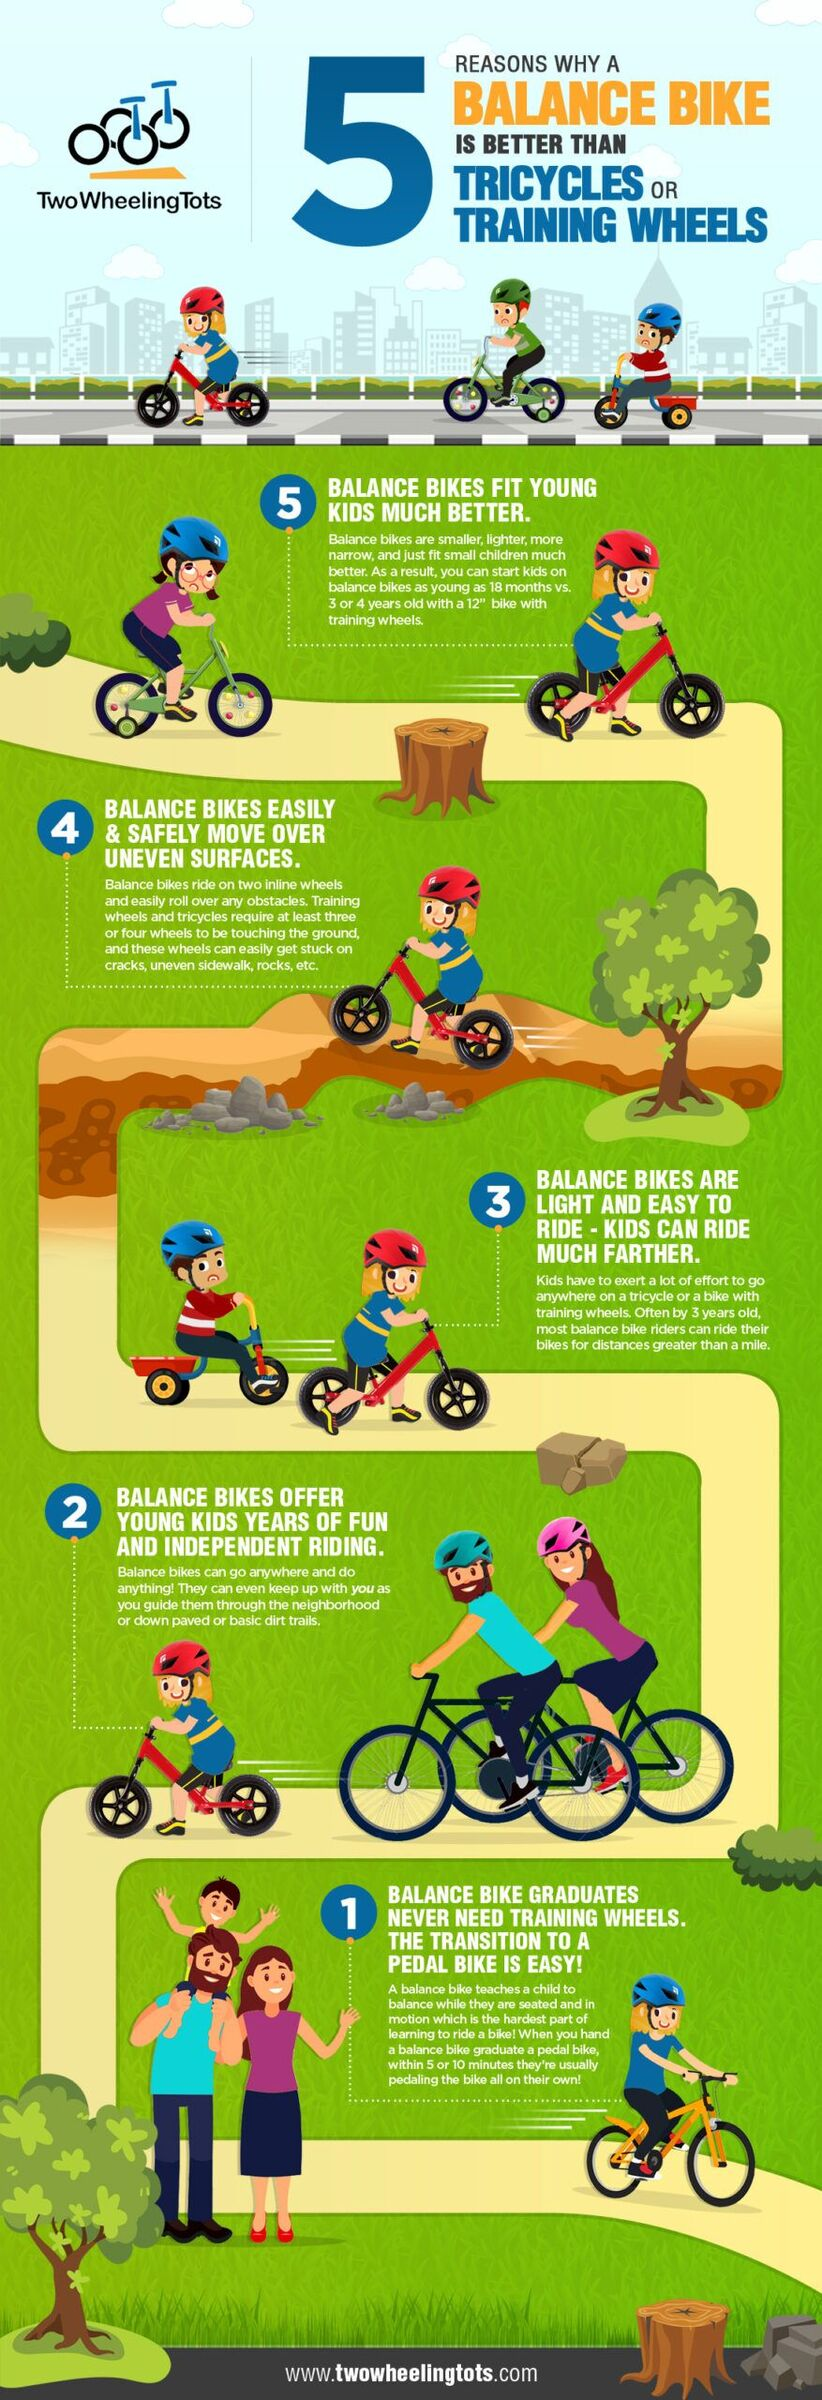 Infographic showing 5 reasons why a balance bike is better than tricycles or training wheels